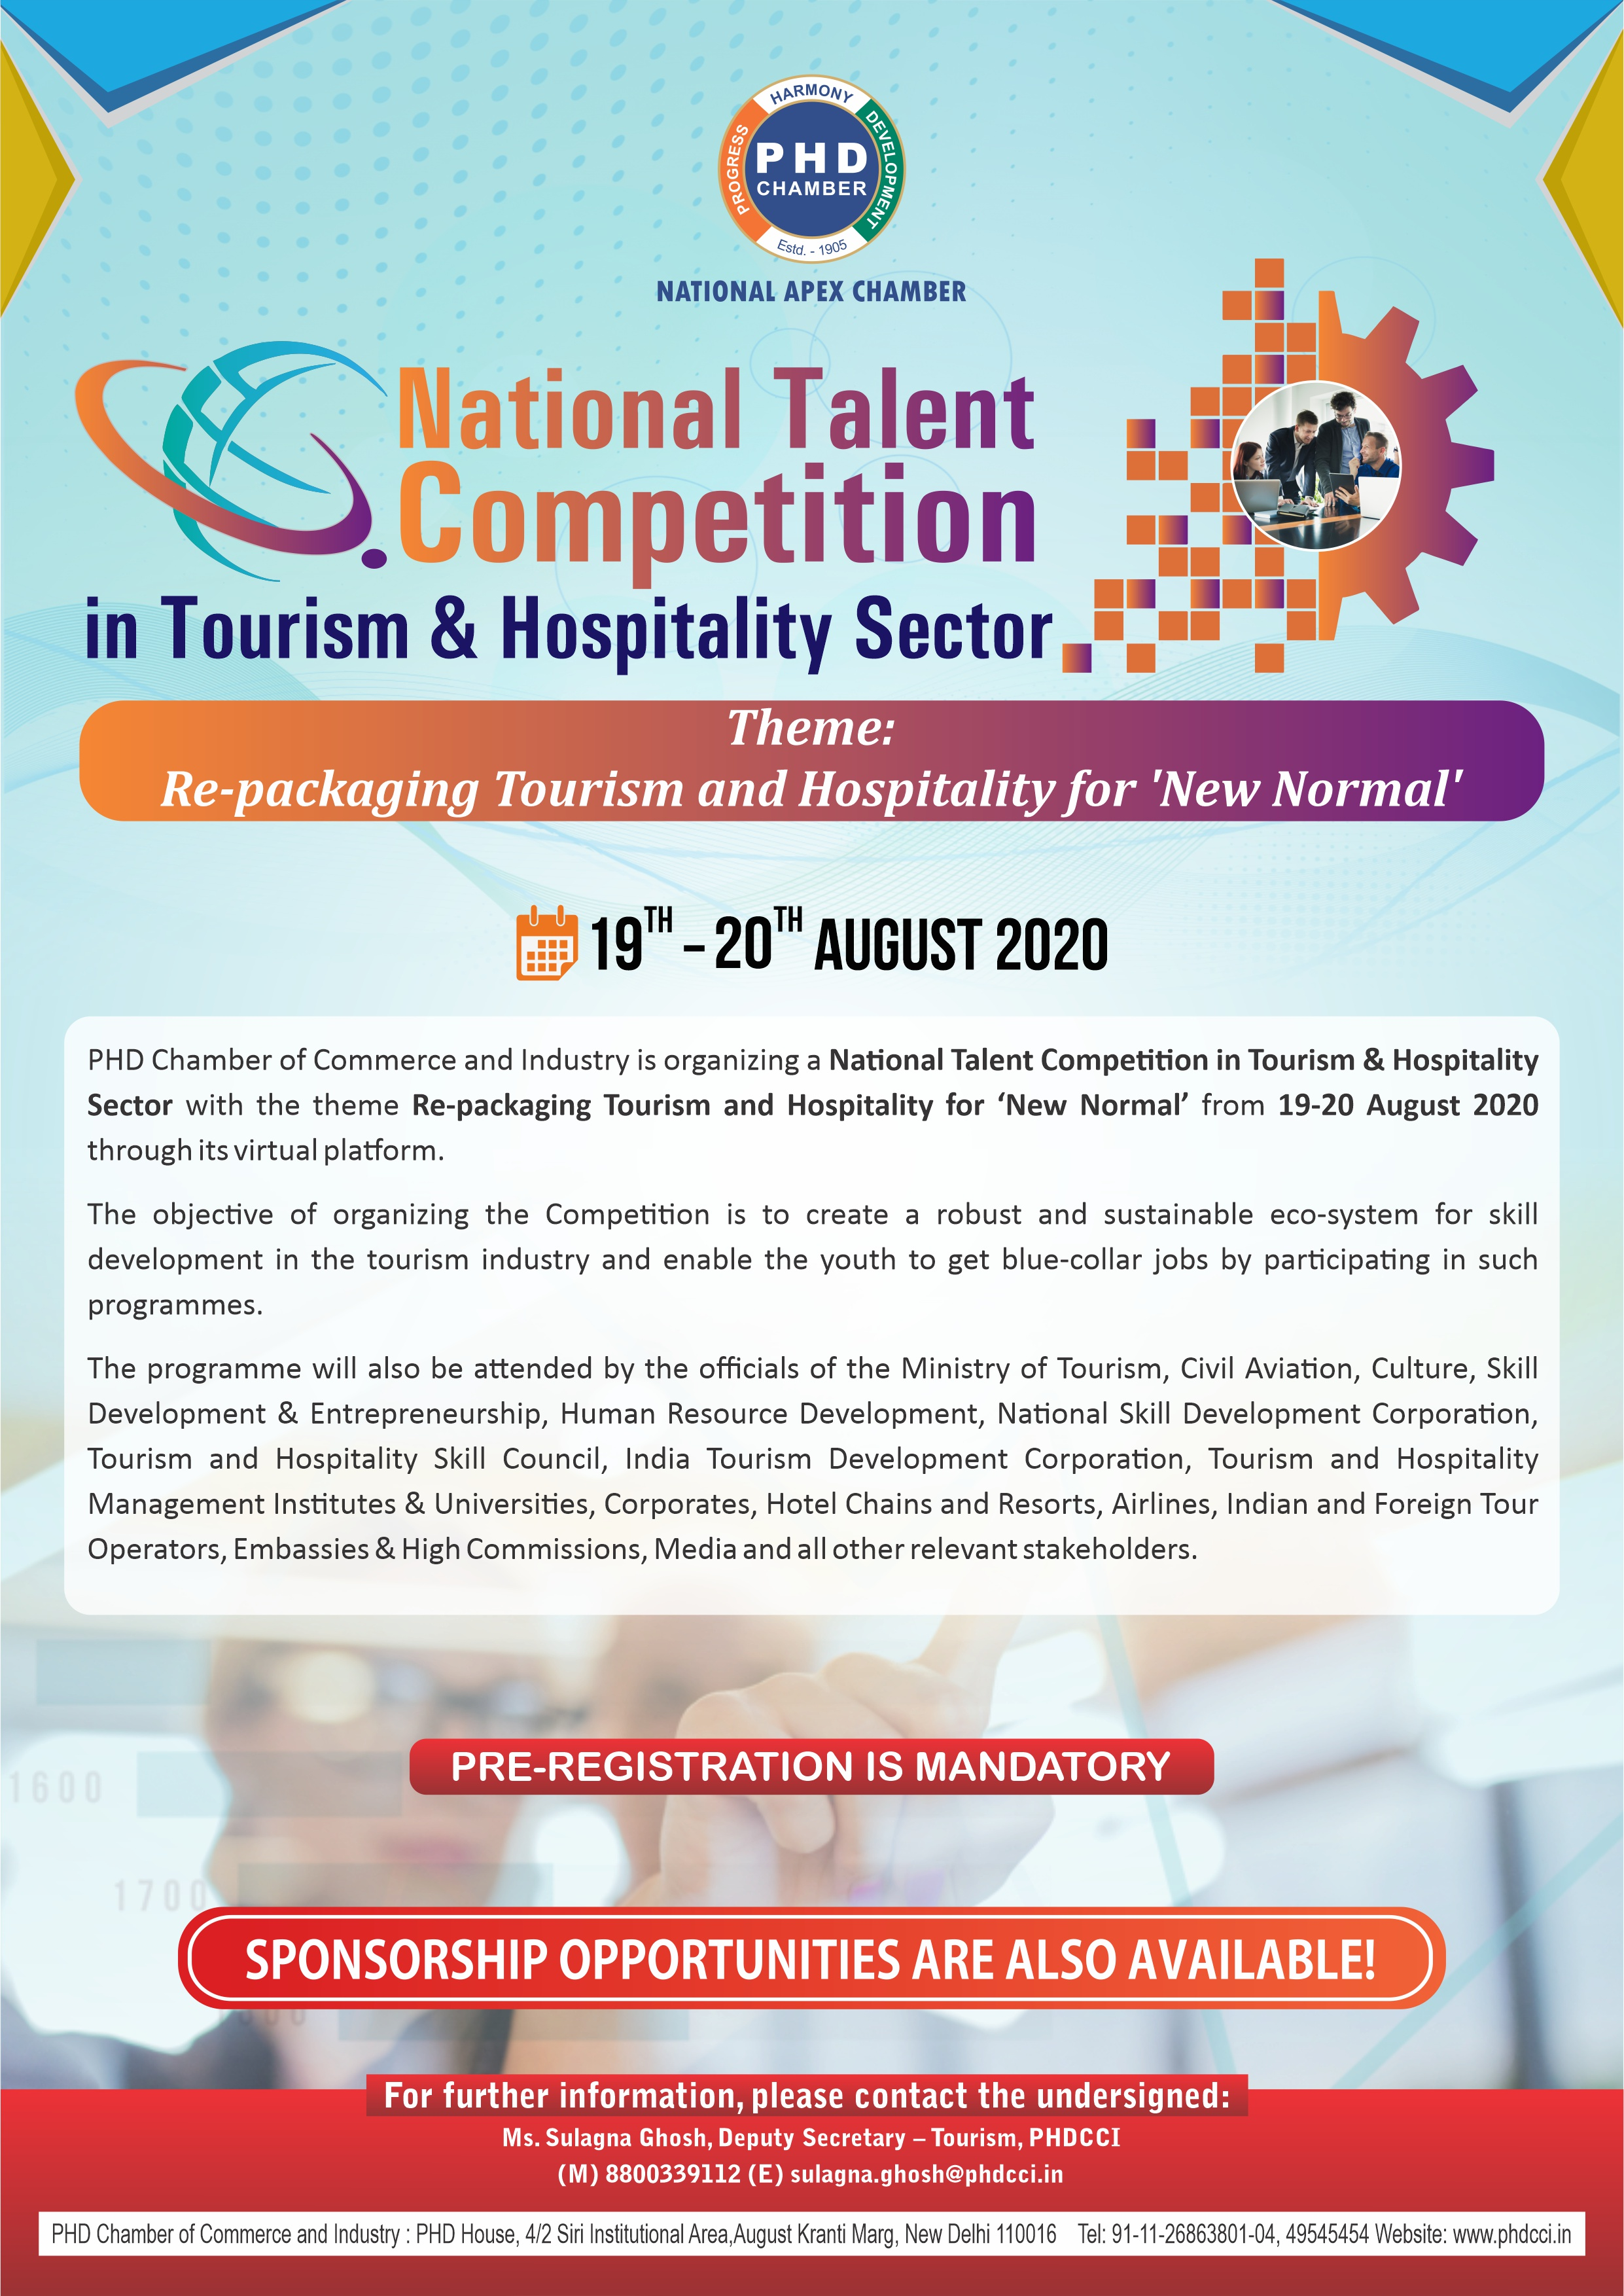 National Talent Competition in Tourism & Hospitality Sector